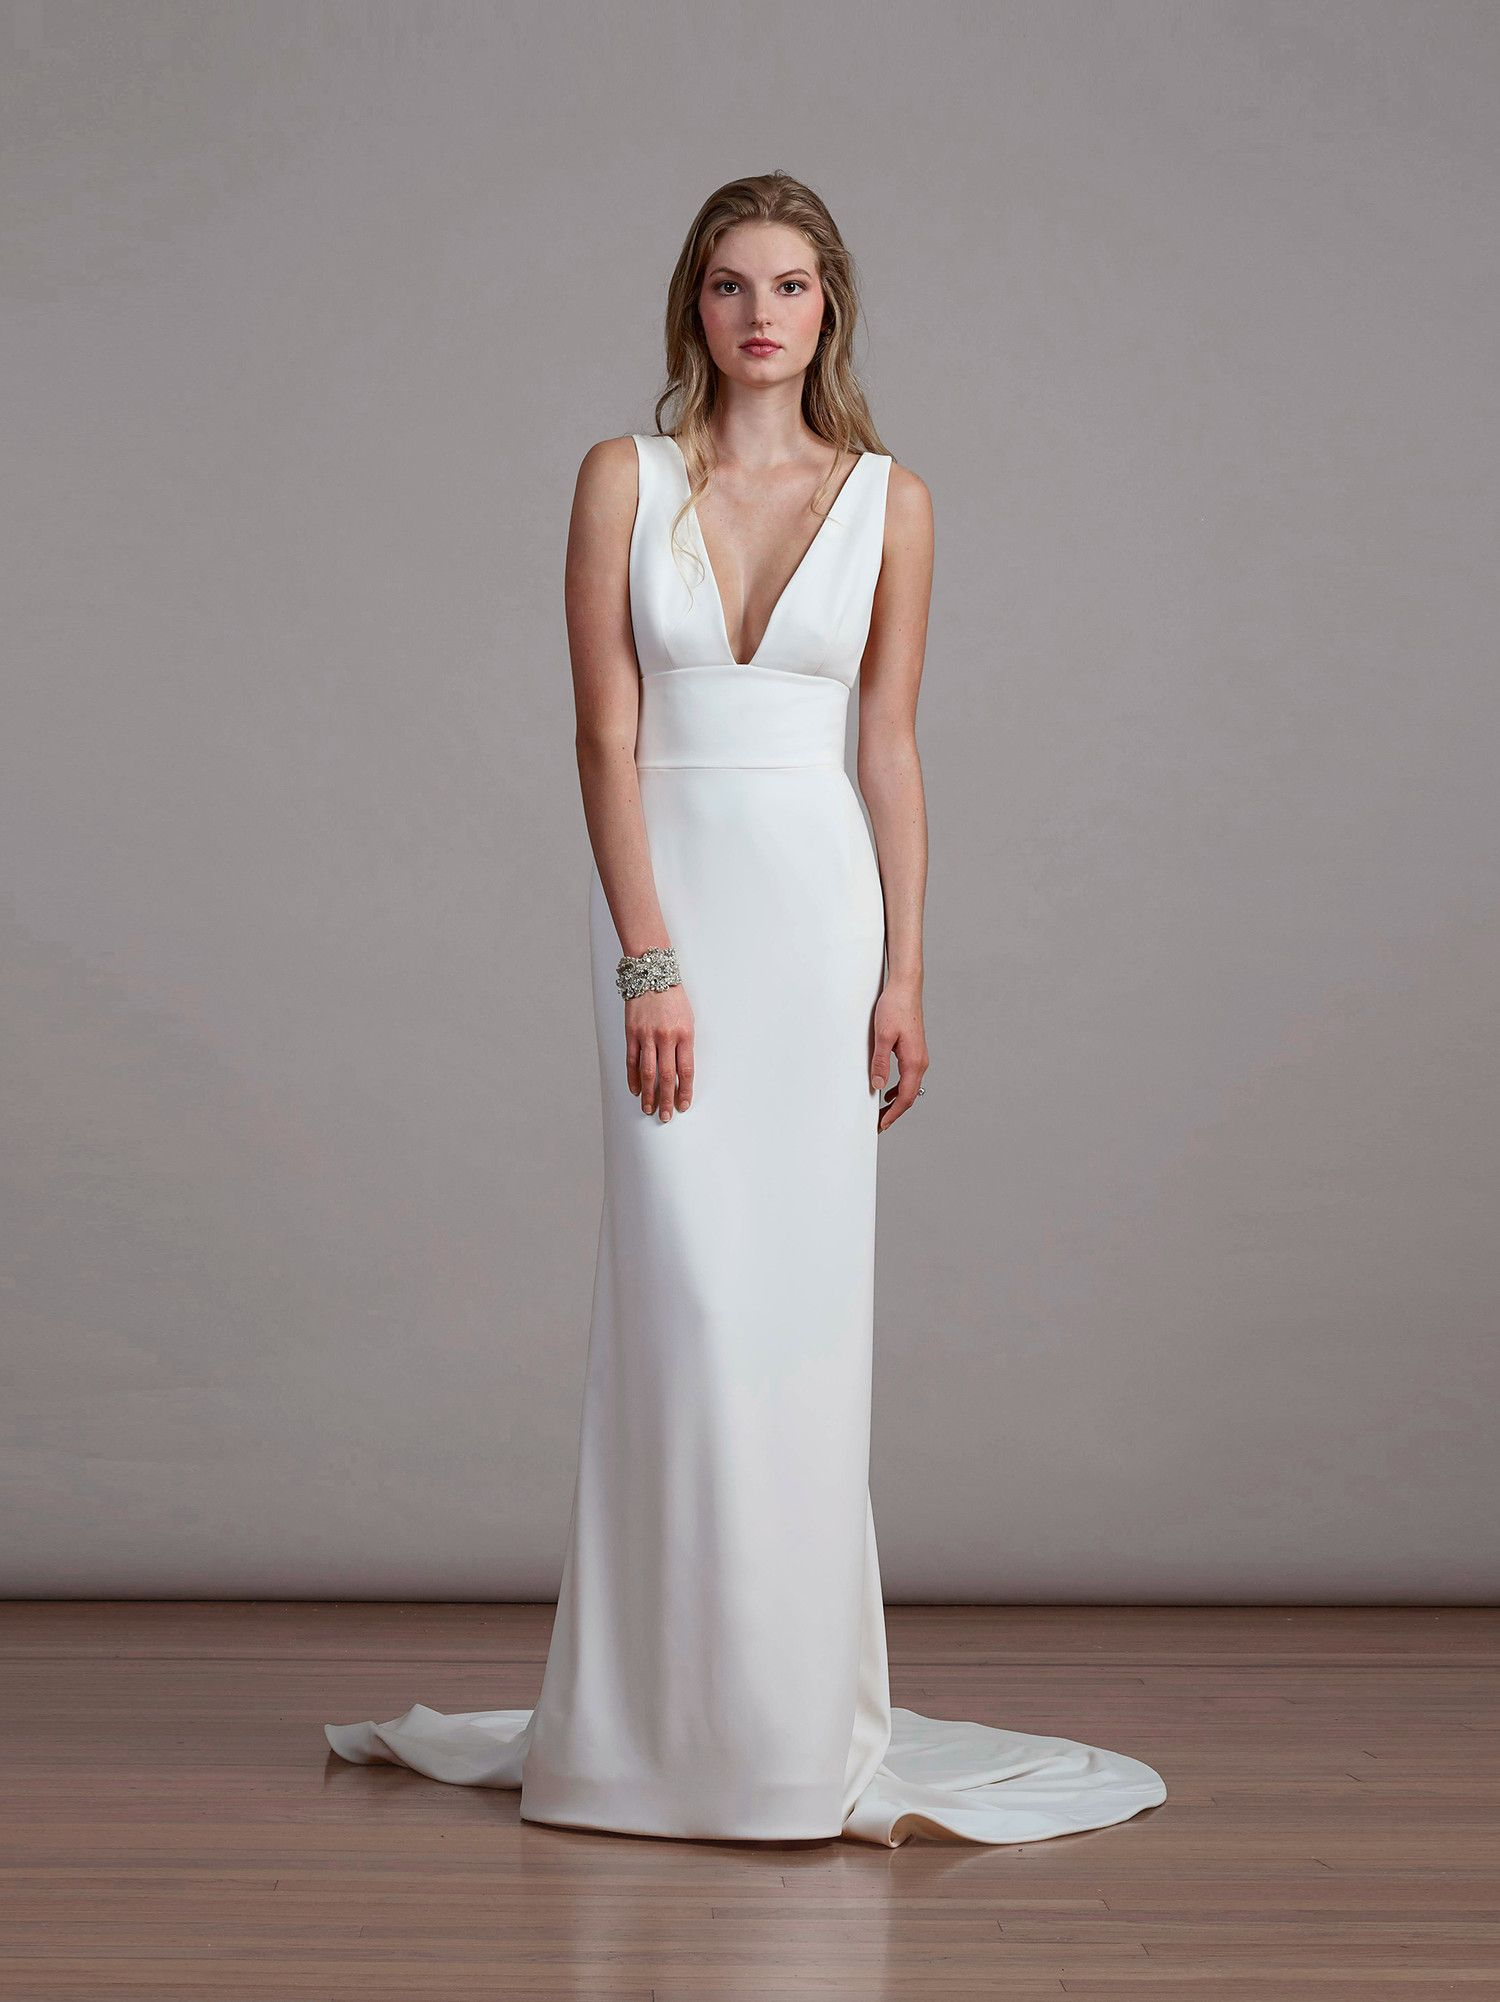 Simple Wedding Dresses That Are Just Plain Chic | Wedding dress ...